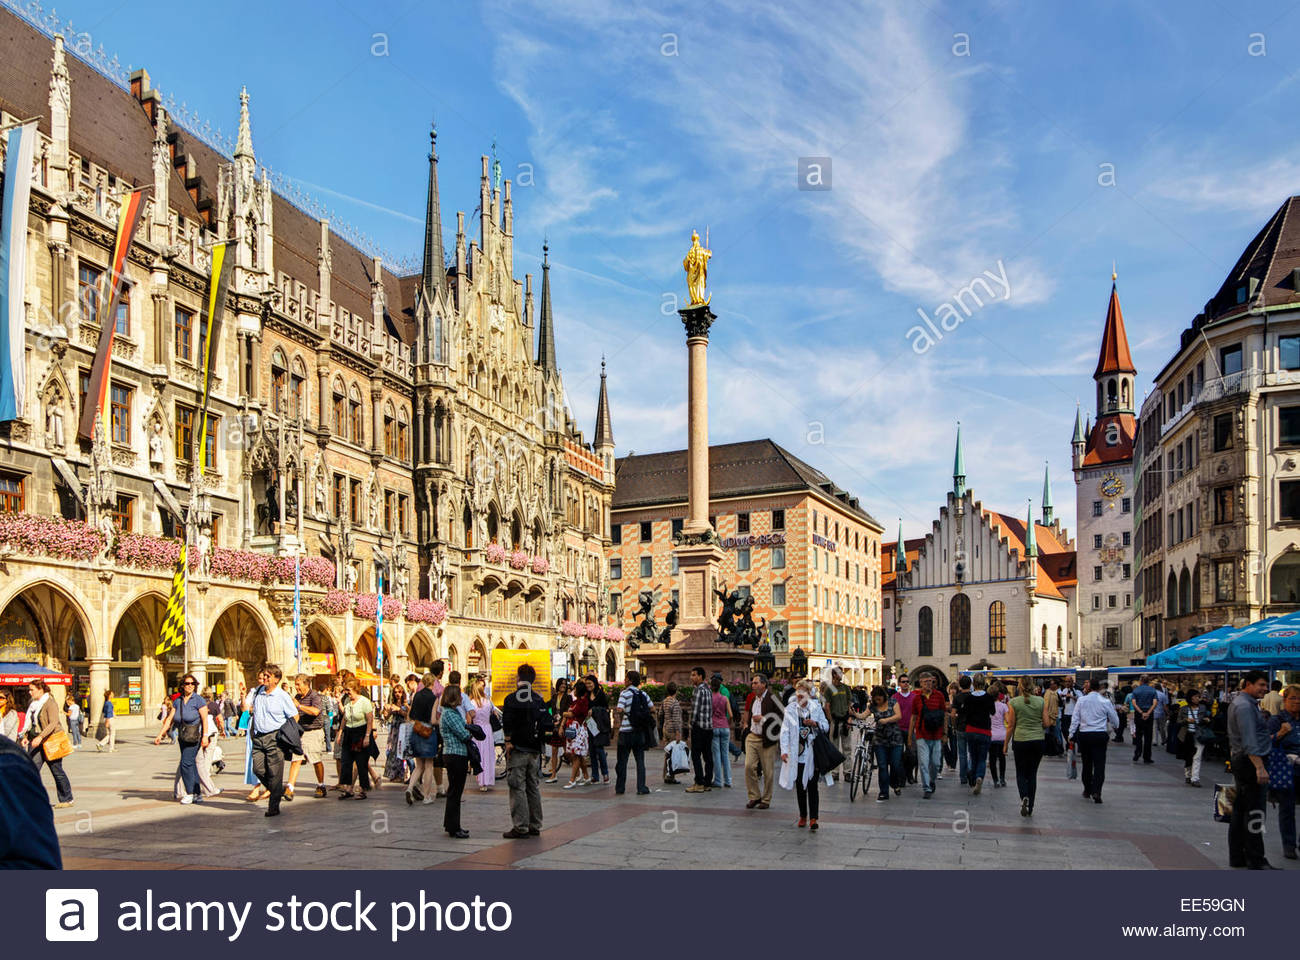 Tourists and others walk, shop, eat and drink on the Marienplatz, the central town square in München / Munich, Germany. Stock Photo